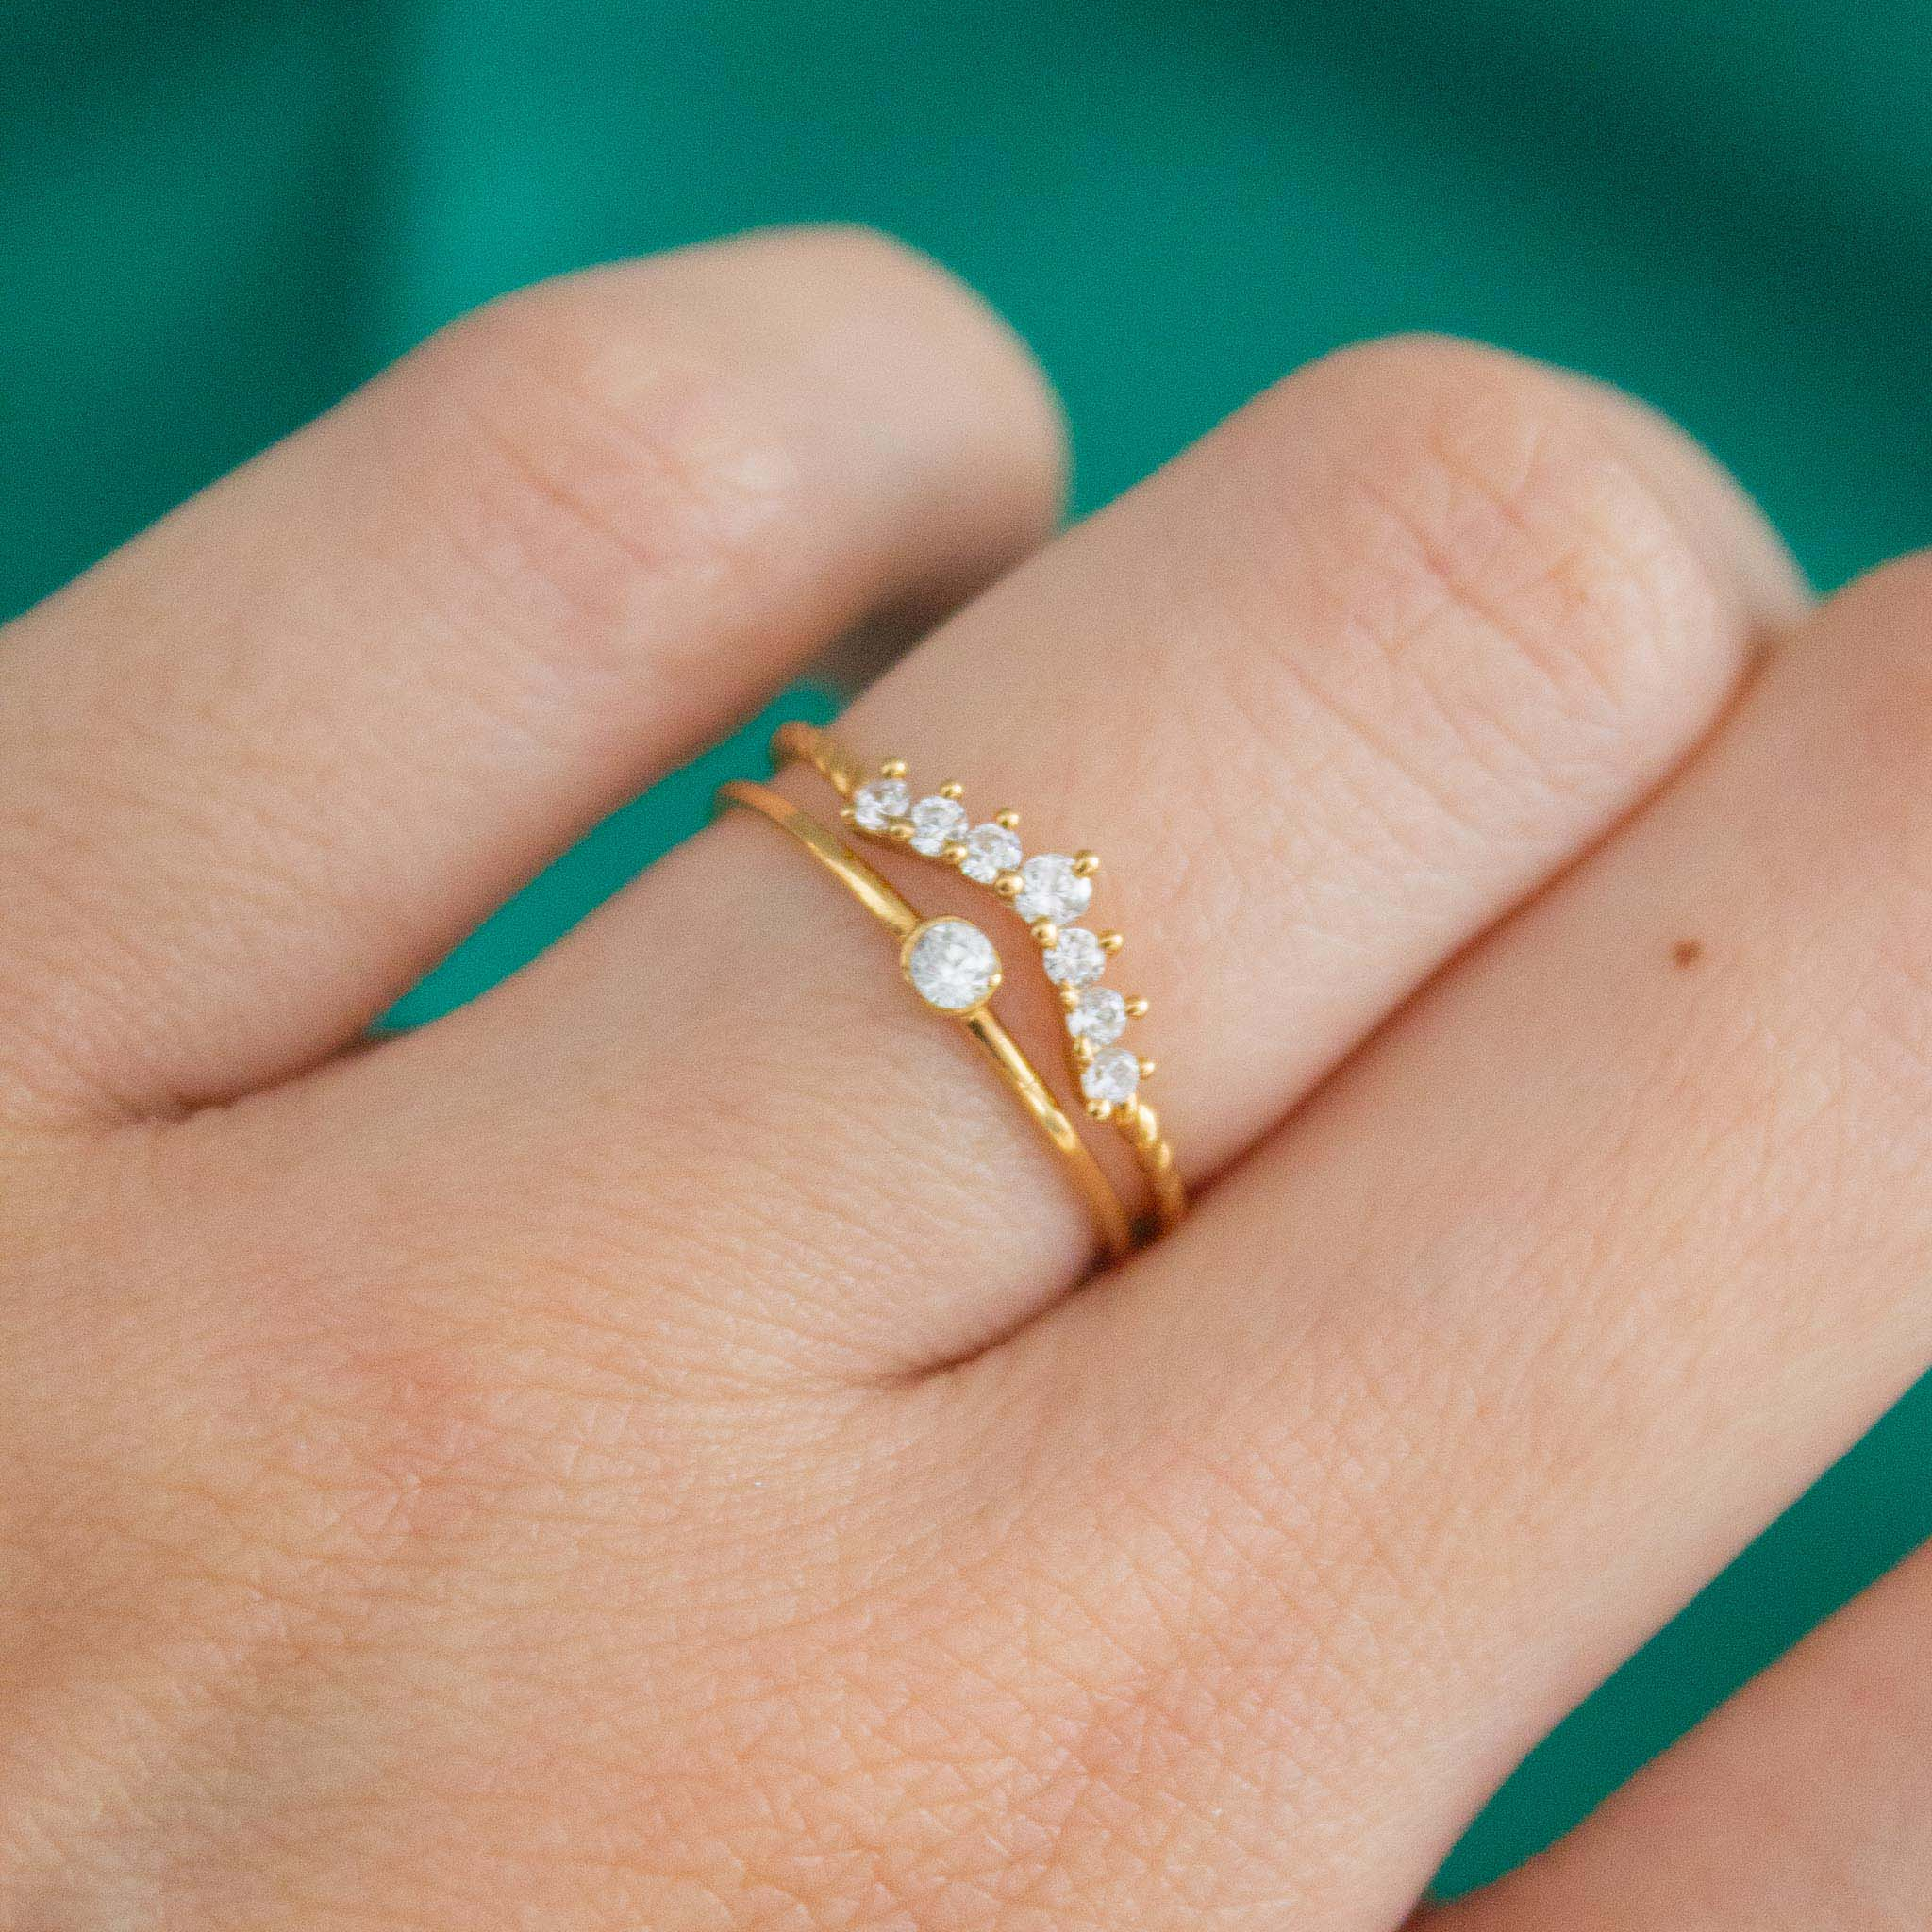 Engagement ring stacking ideas